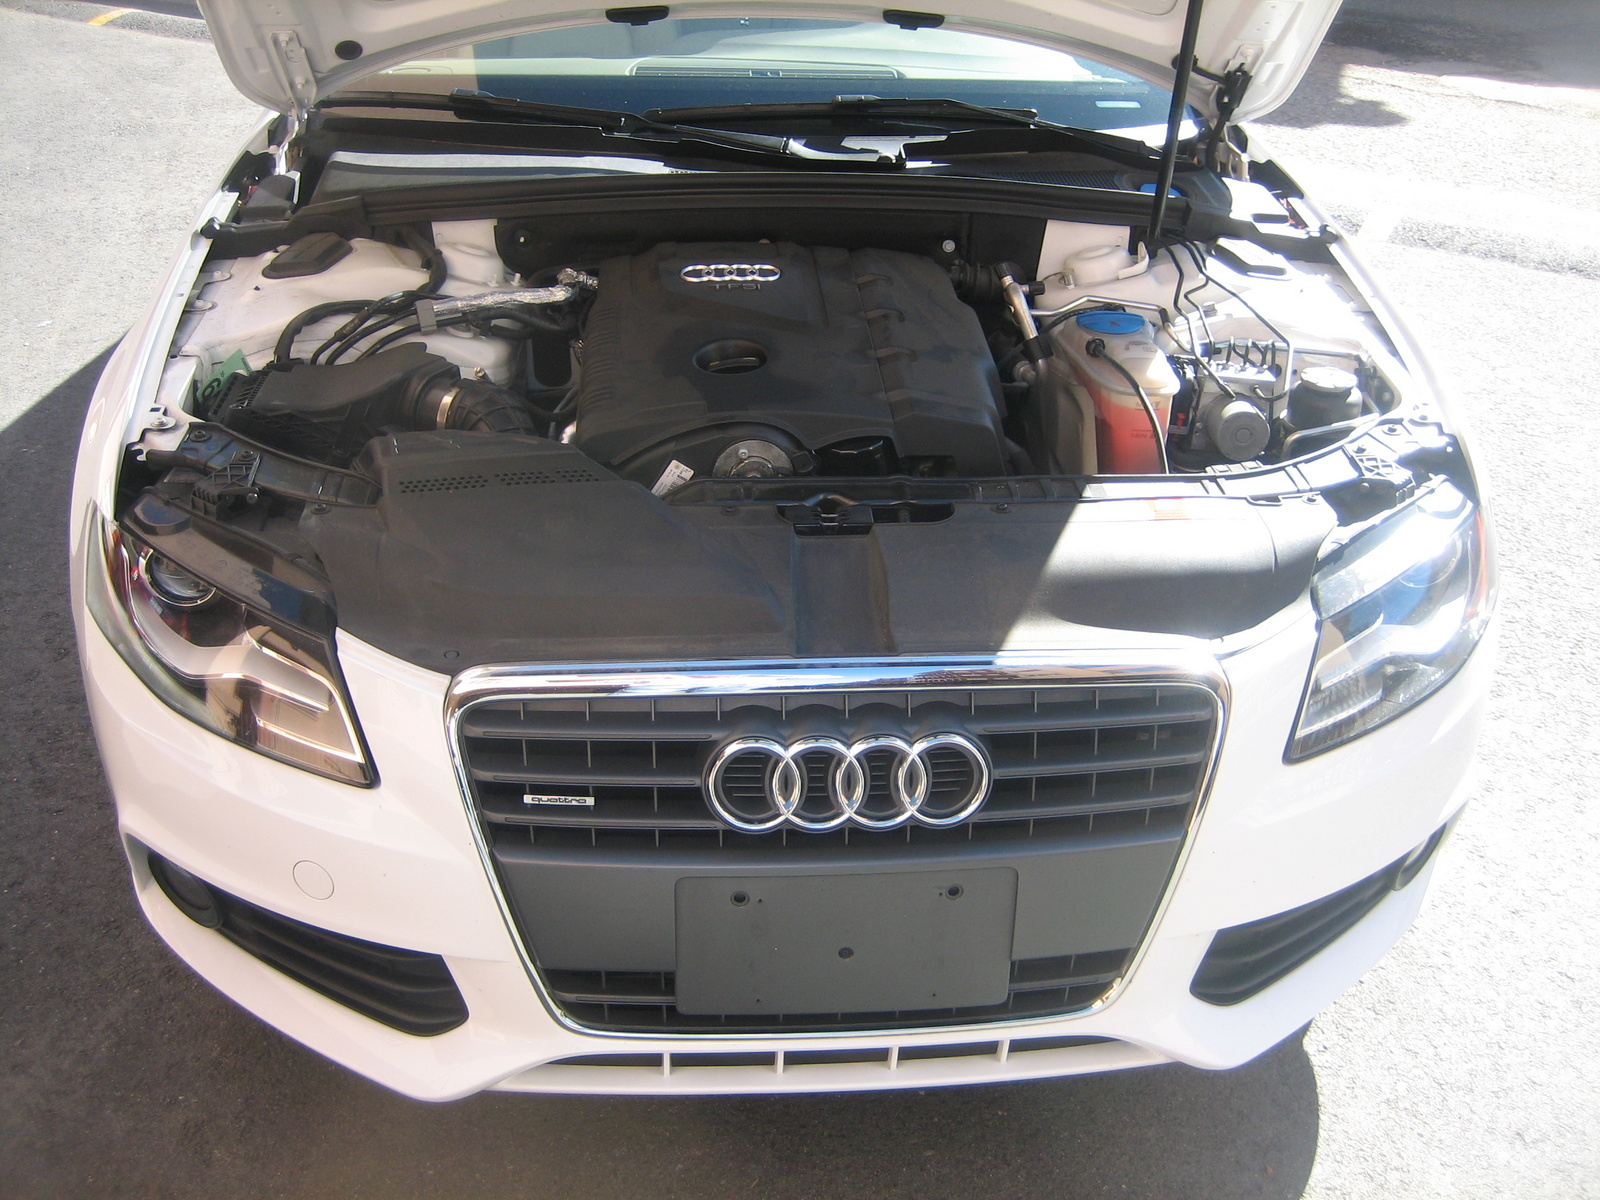 2009 audi a4 problems Prestige motors warwick